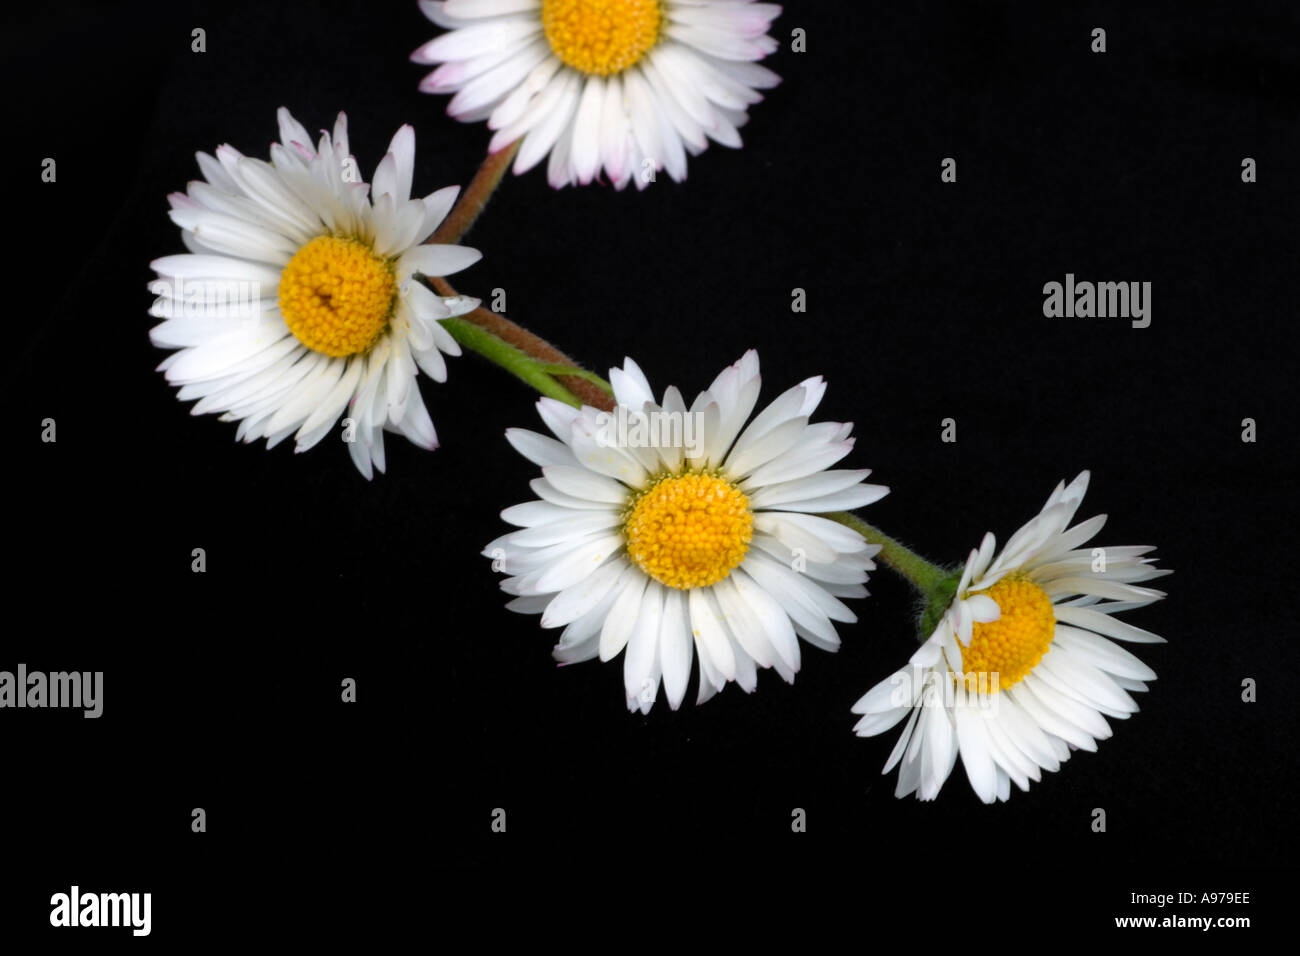 Daisy flowers in a single daisy chain, to make into a bracelet, necklace or floral crown - Stock Image